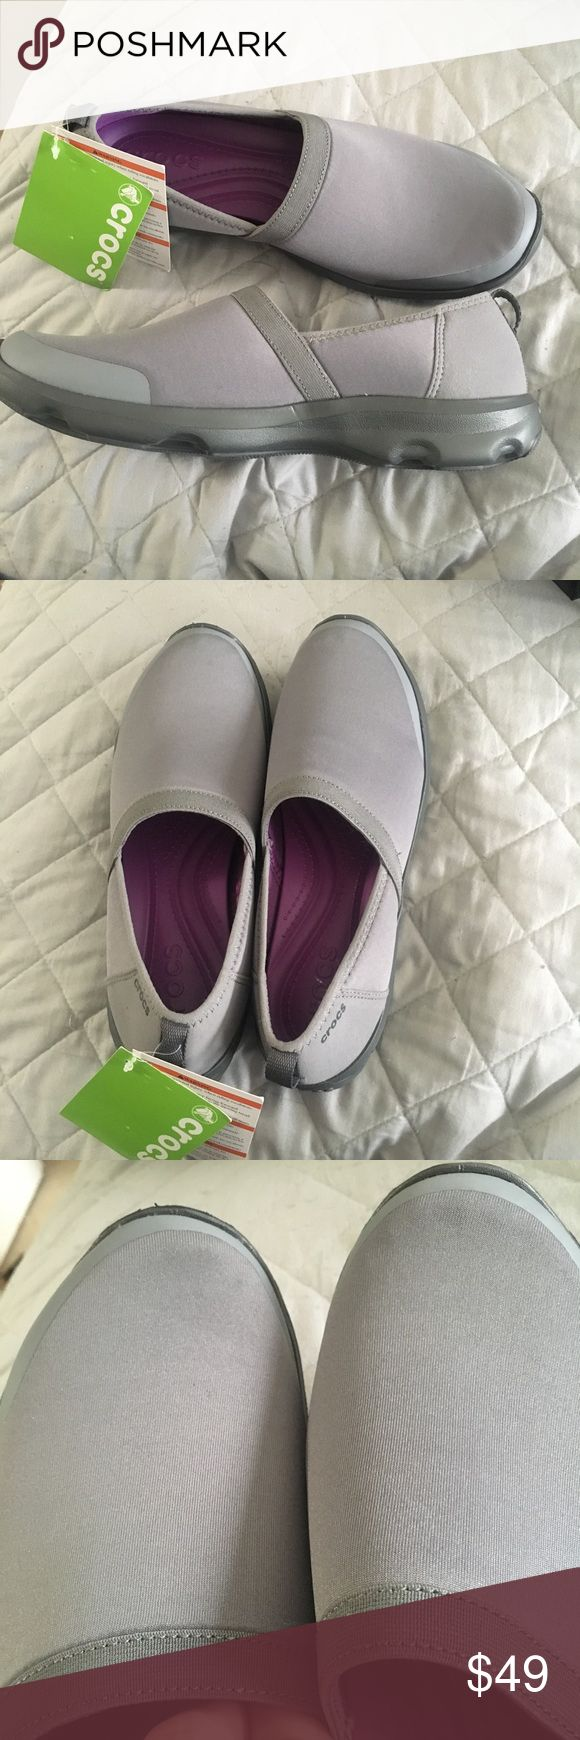 Women's Crocs duet busy day 2.0 size 10 Women's crocs size 10 smoke/graphite shoes. This is brand new never worn. CROCS Shoes